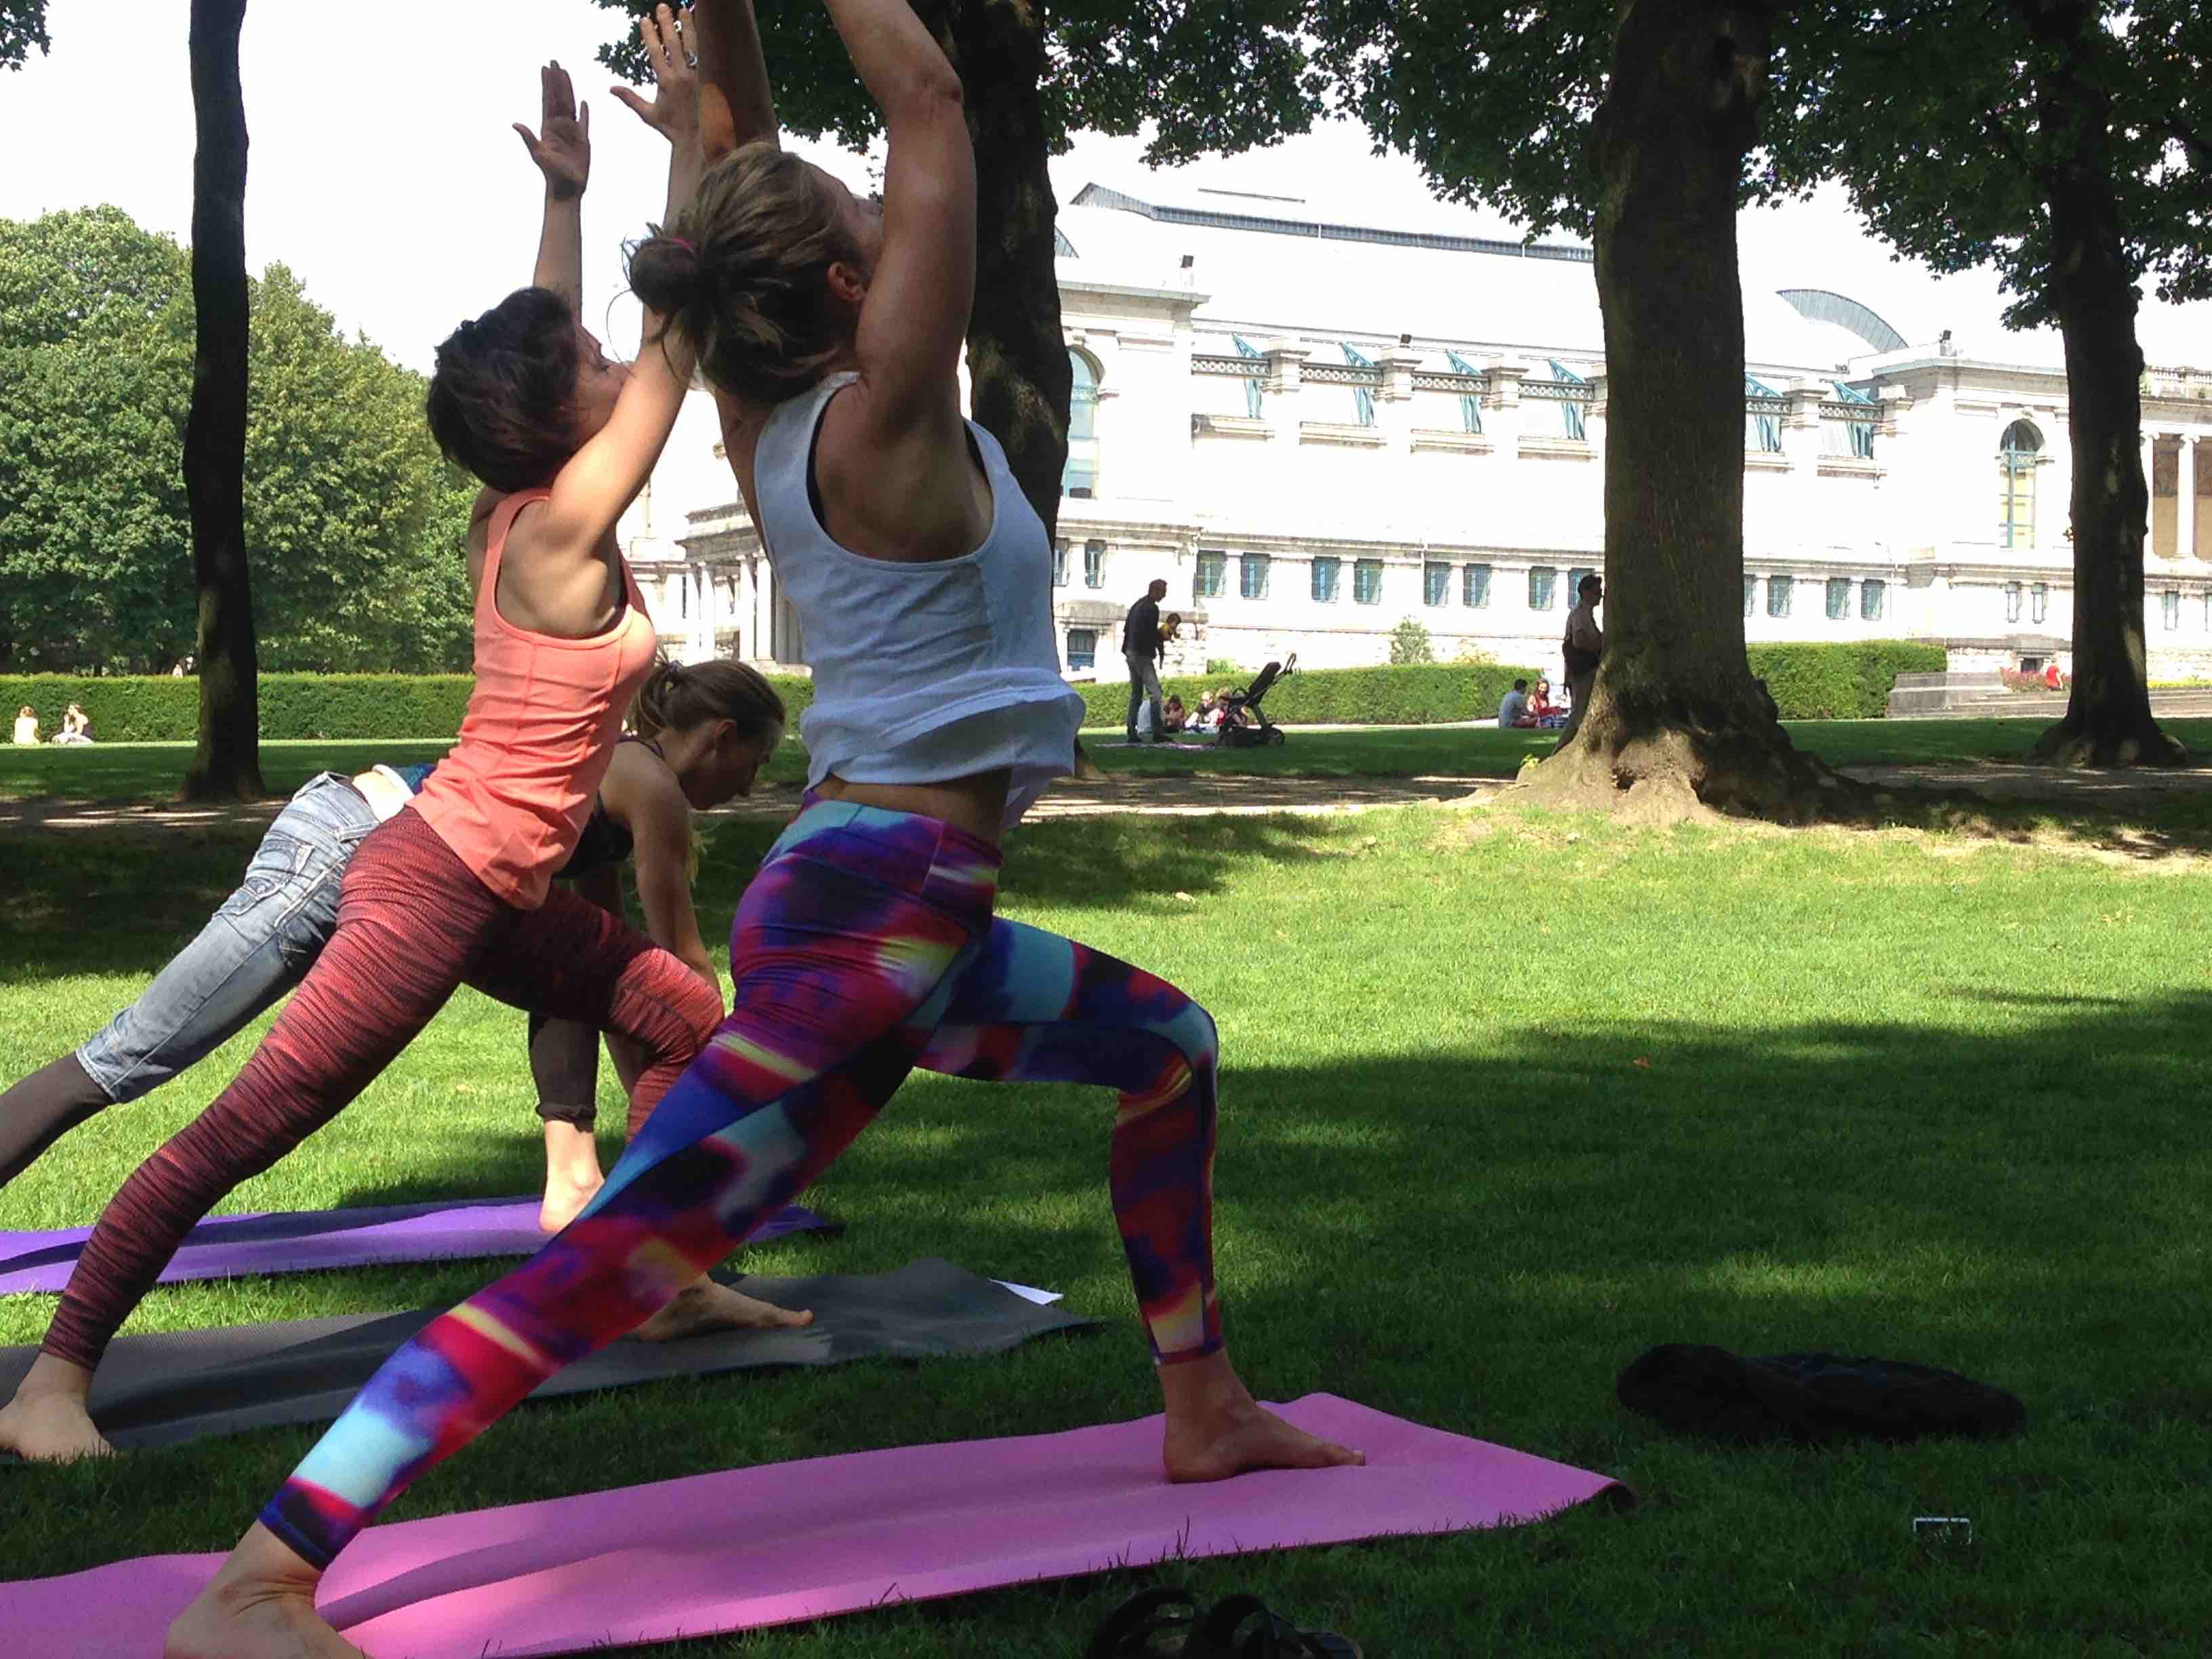 The Yoga Loft Takes Advantage Of Beautiful Weather By Moving Classes Into Green Surroundings